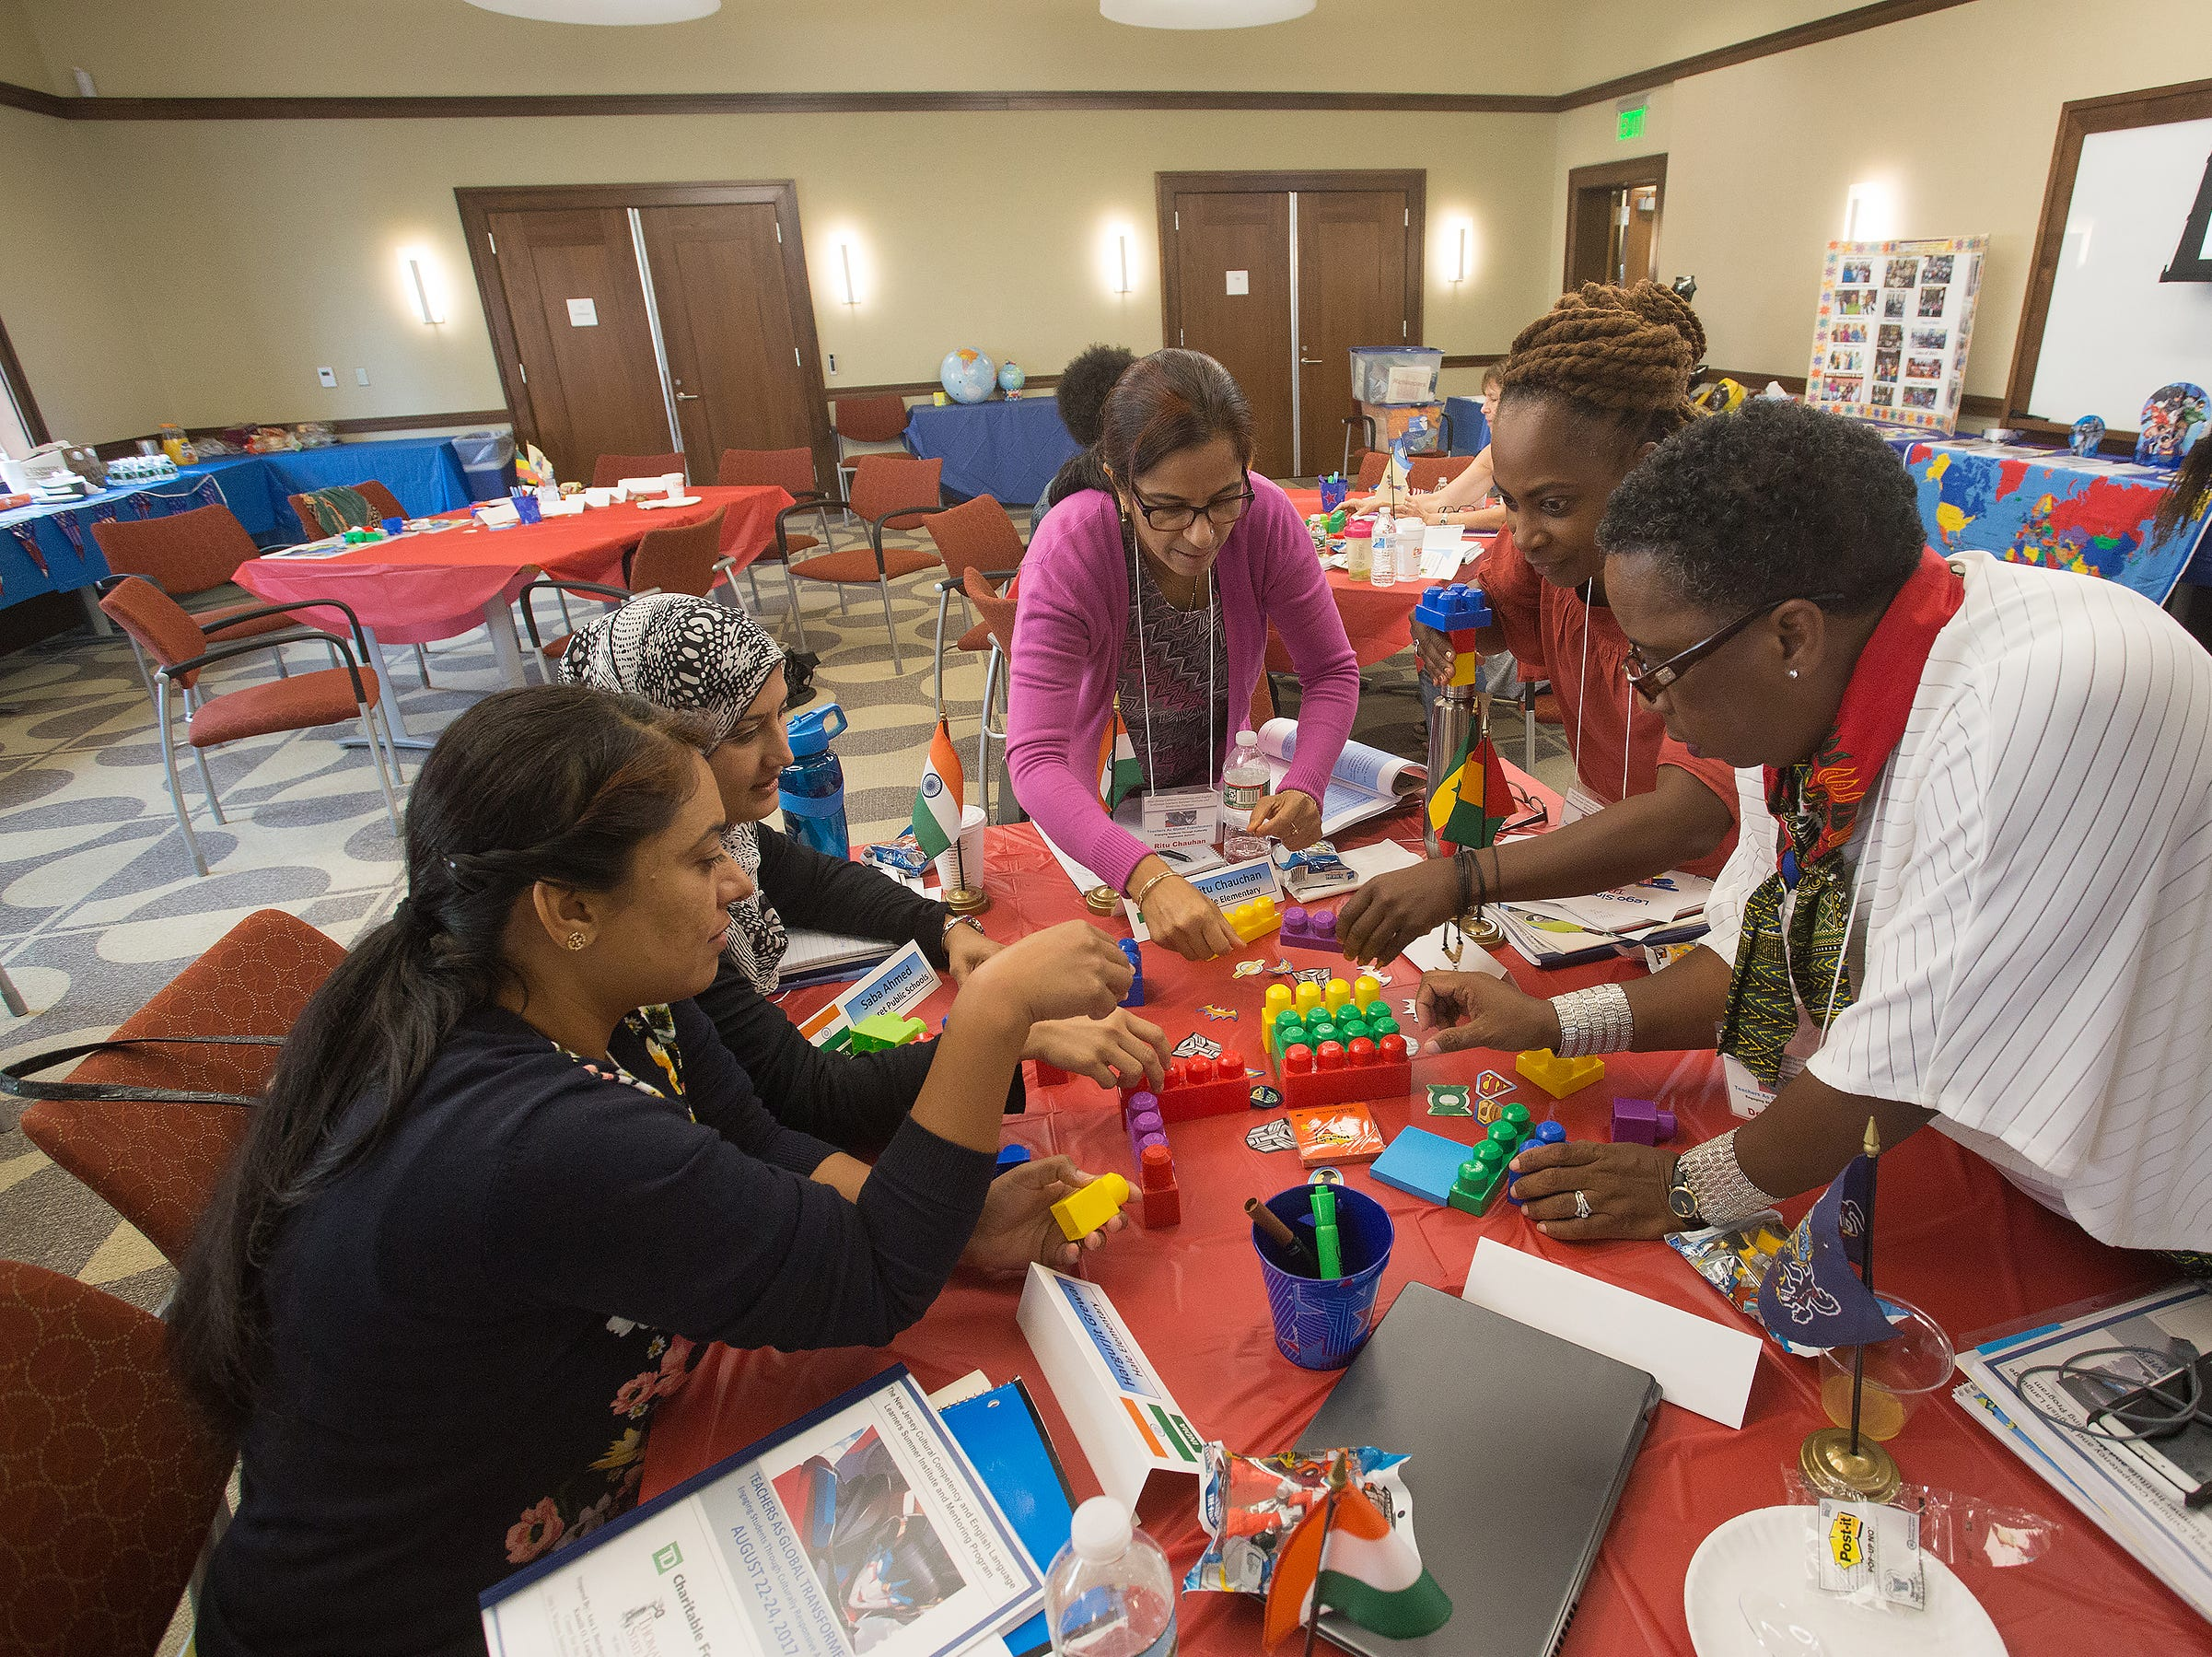 Early childhood educators participate in The Art of Change simulation using LEGO blocks during the 2017 N.J. Cultural Competency and English Language Learners Institute and Mentoring Program (ELL) at Thomas Edison State University. Participants (from left to right) Hargurjit Grewal, Saba Ahmed and Ritu Chauhan learn lessons they'll take back to their classrooms from ELL mentors Nilajah Abdullah and Dee Bailey.